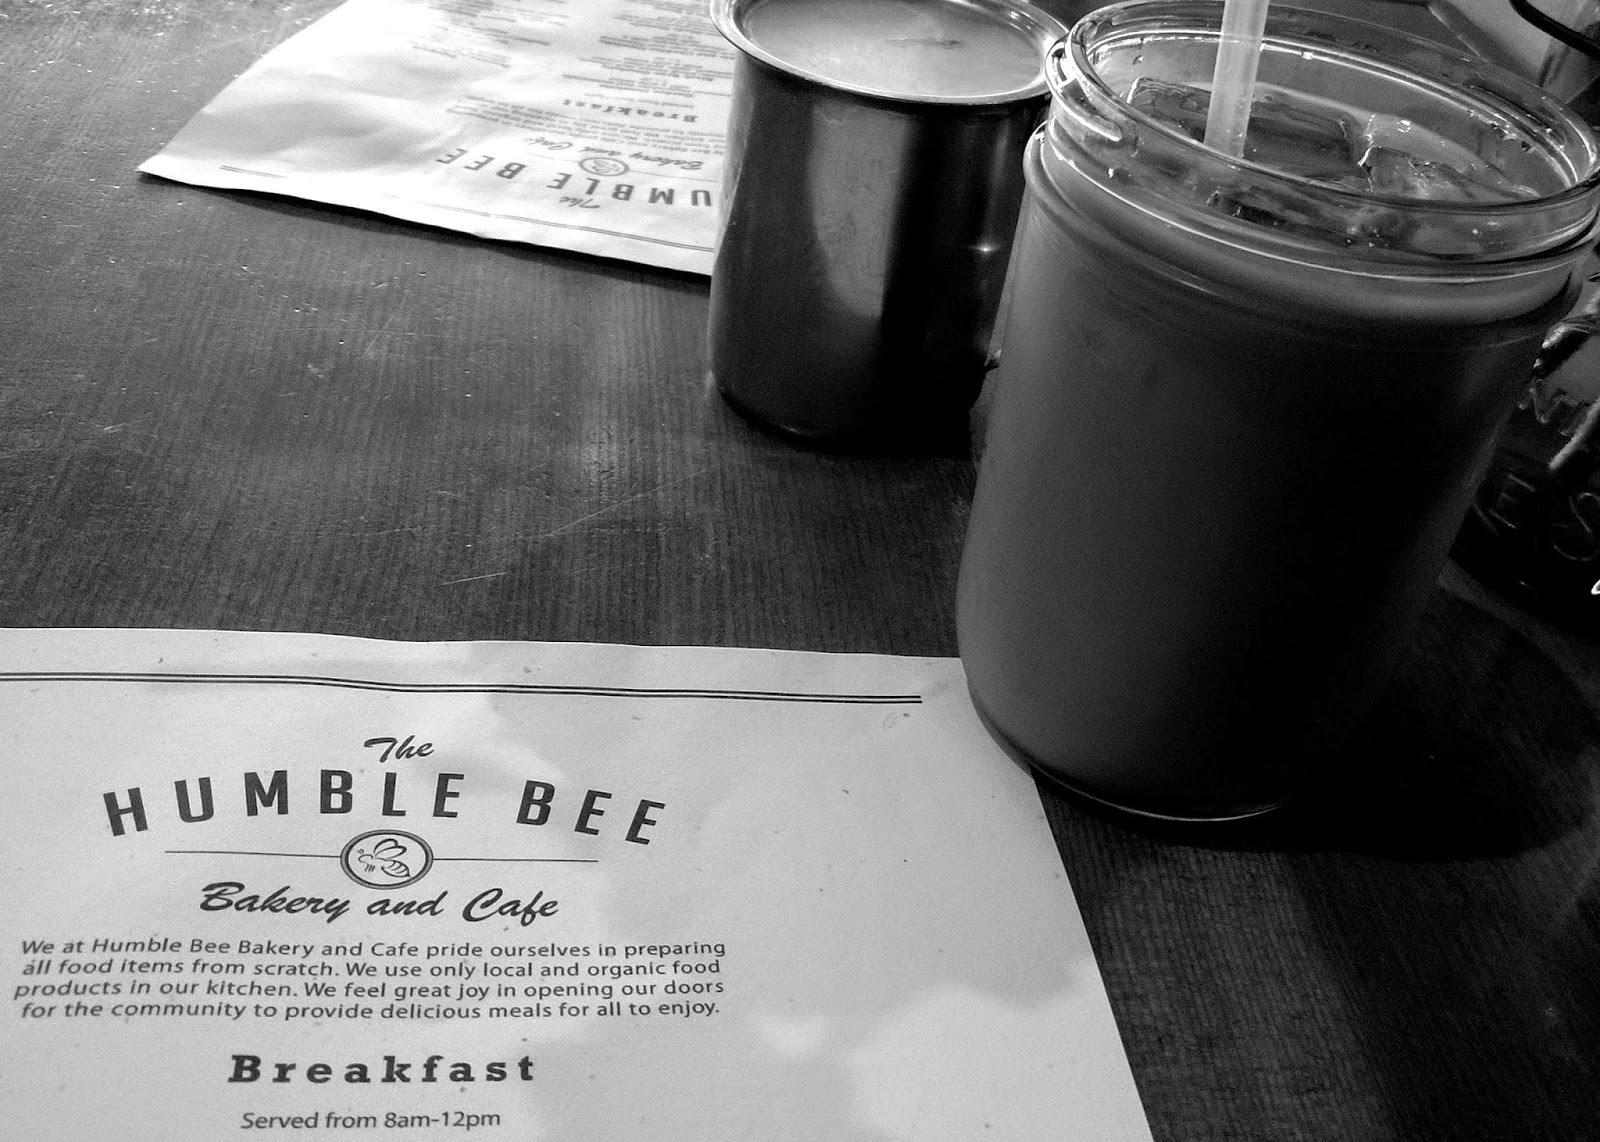 The Humble Bee bakery and cafe